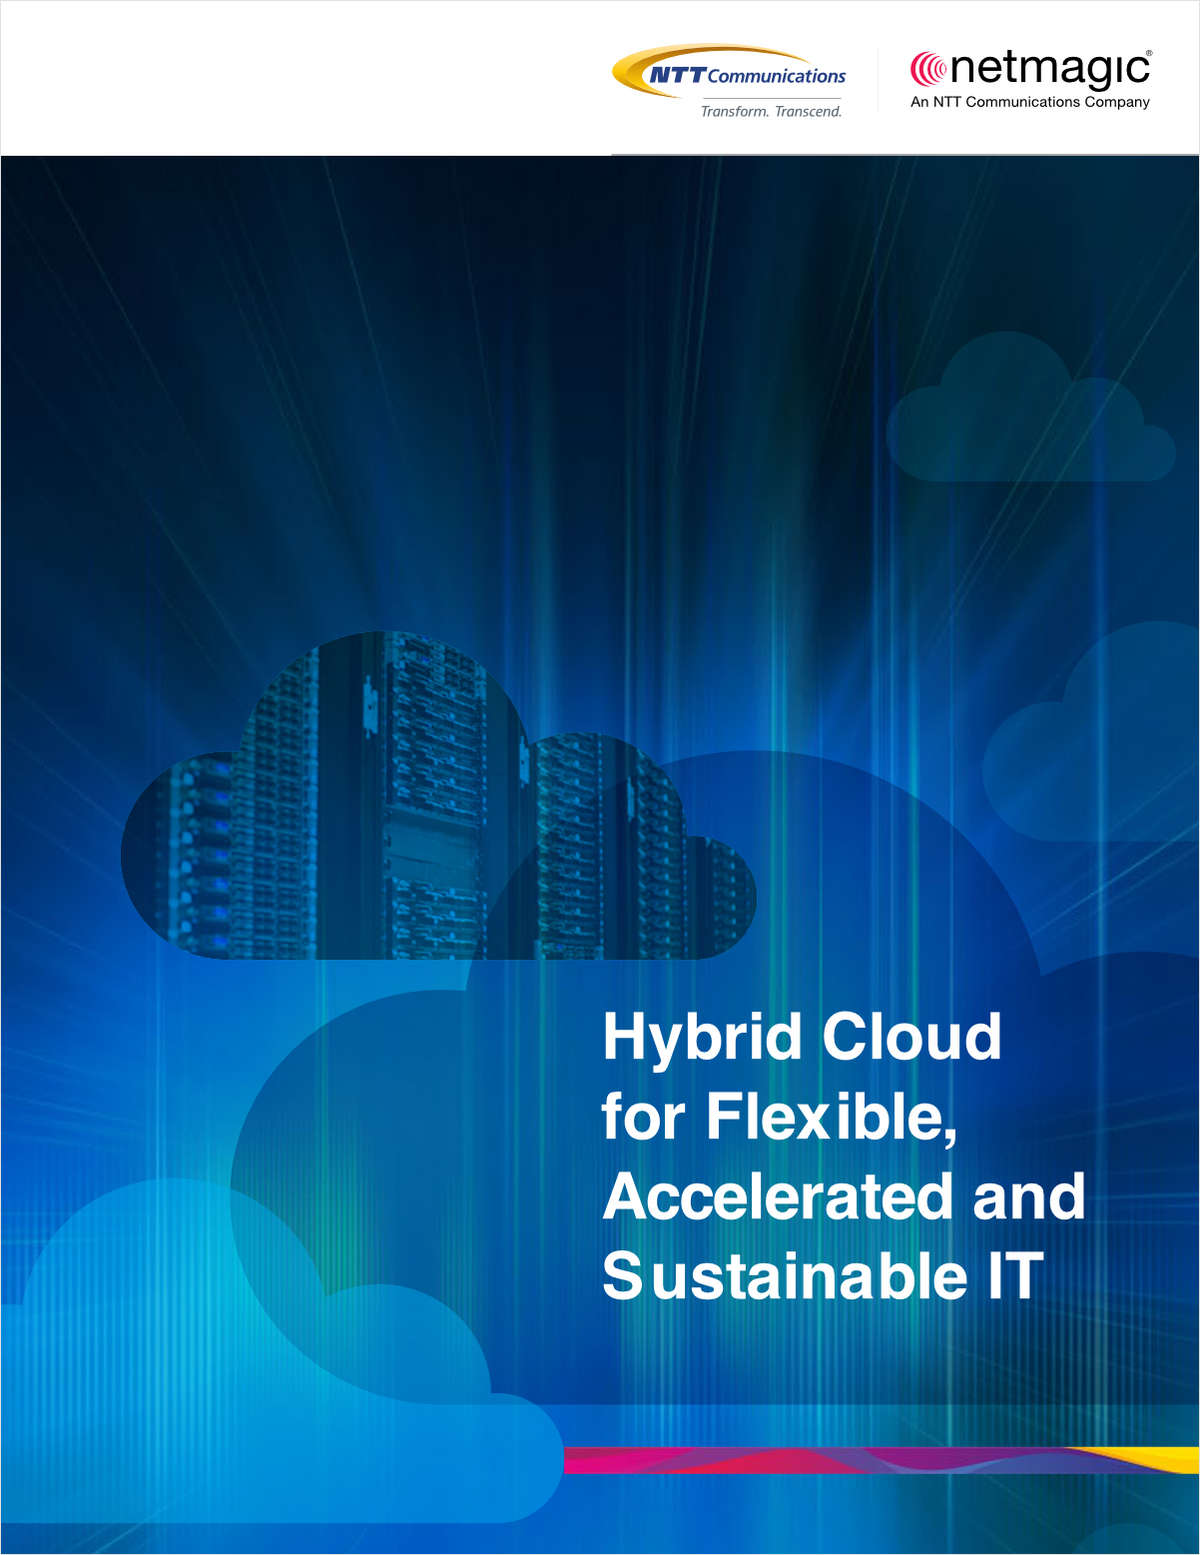 Hybrid Cloud for Flexible, Accelerated and Sustainable IT